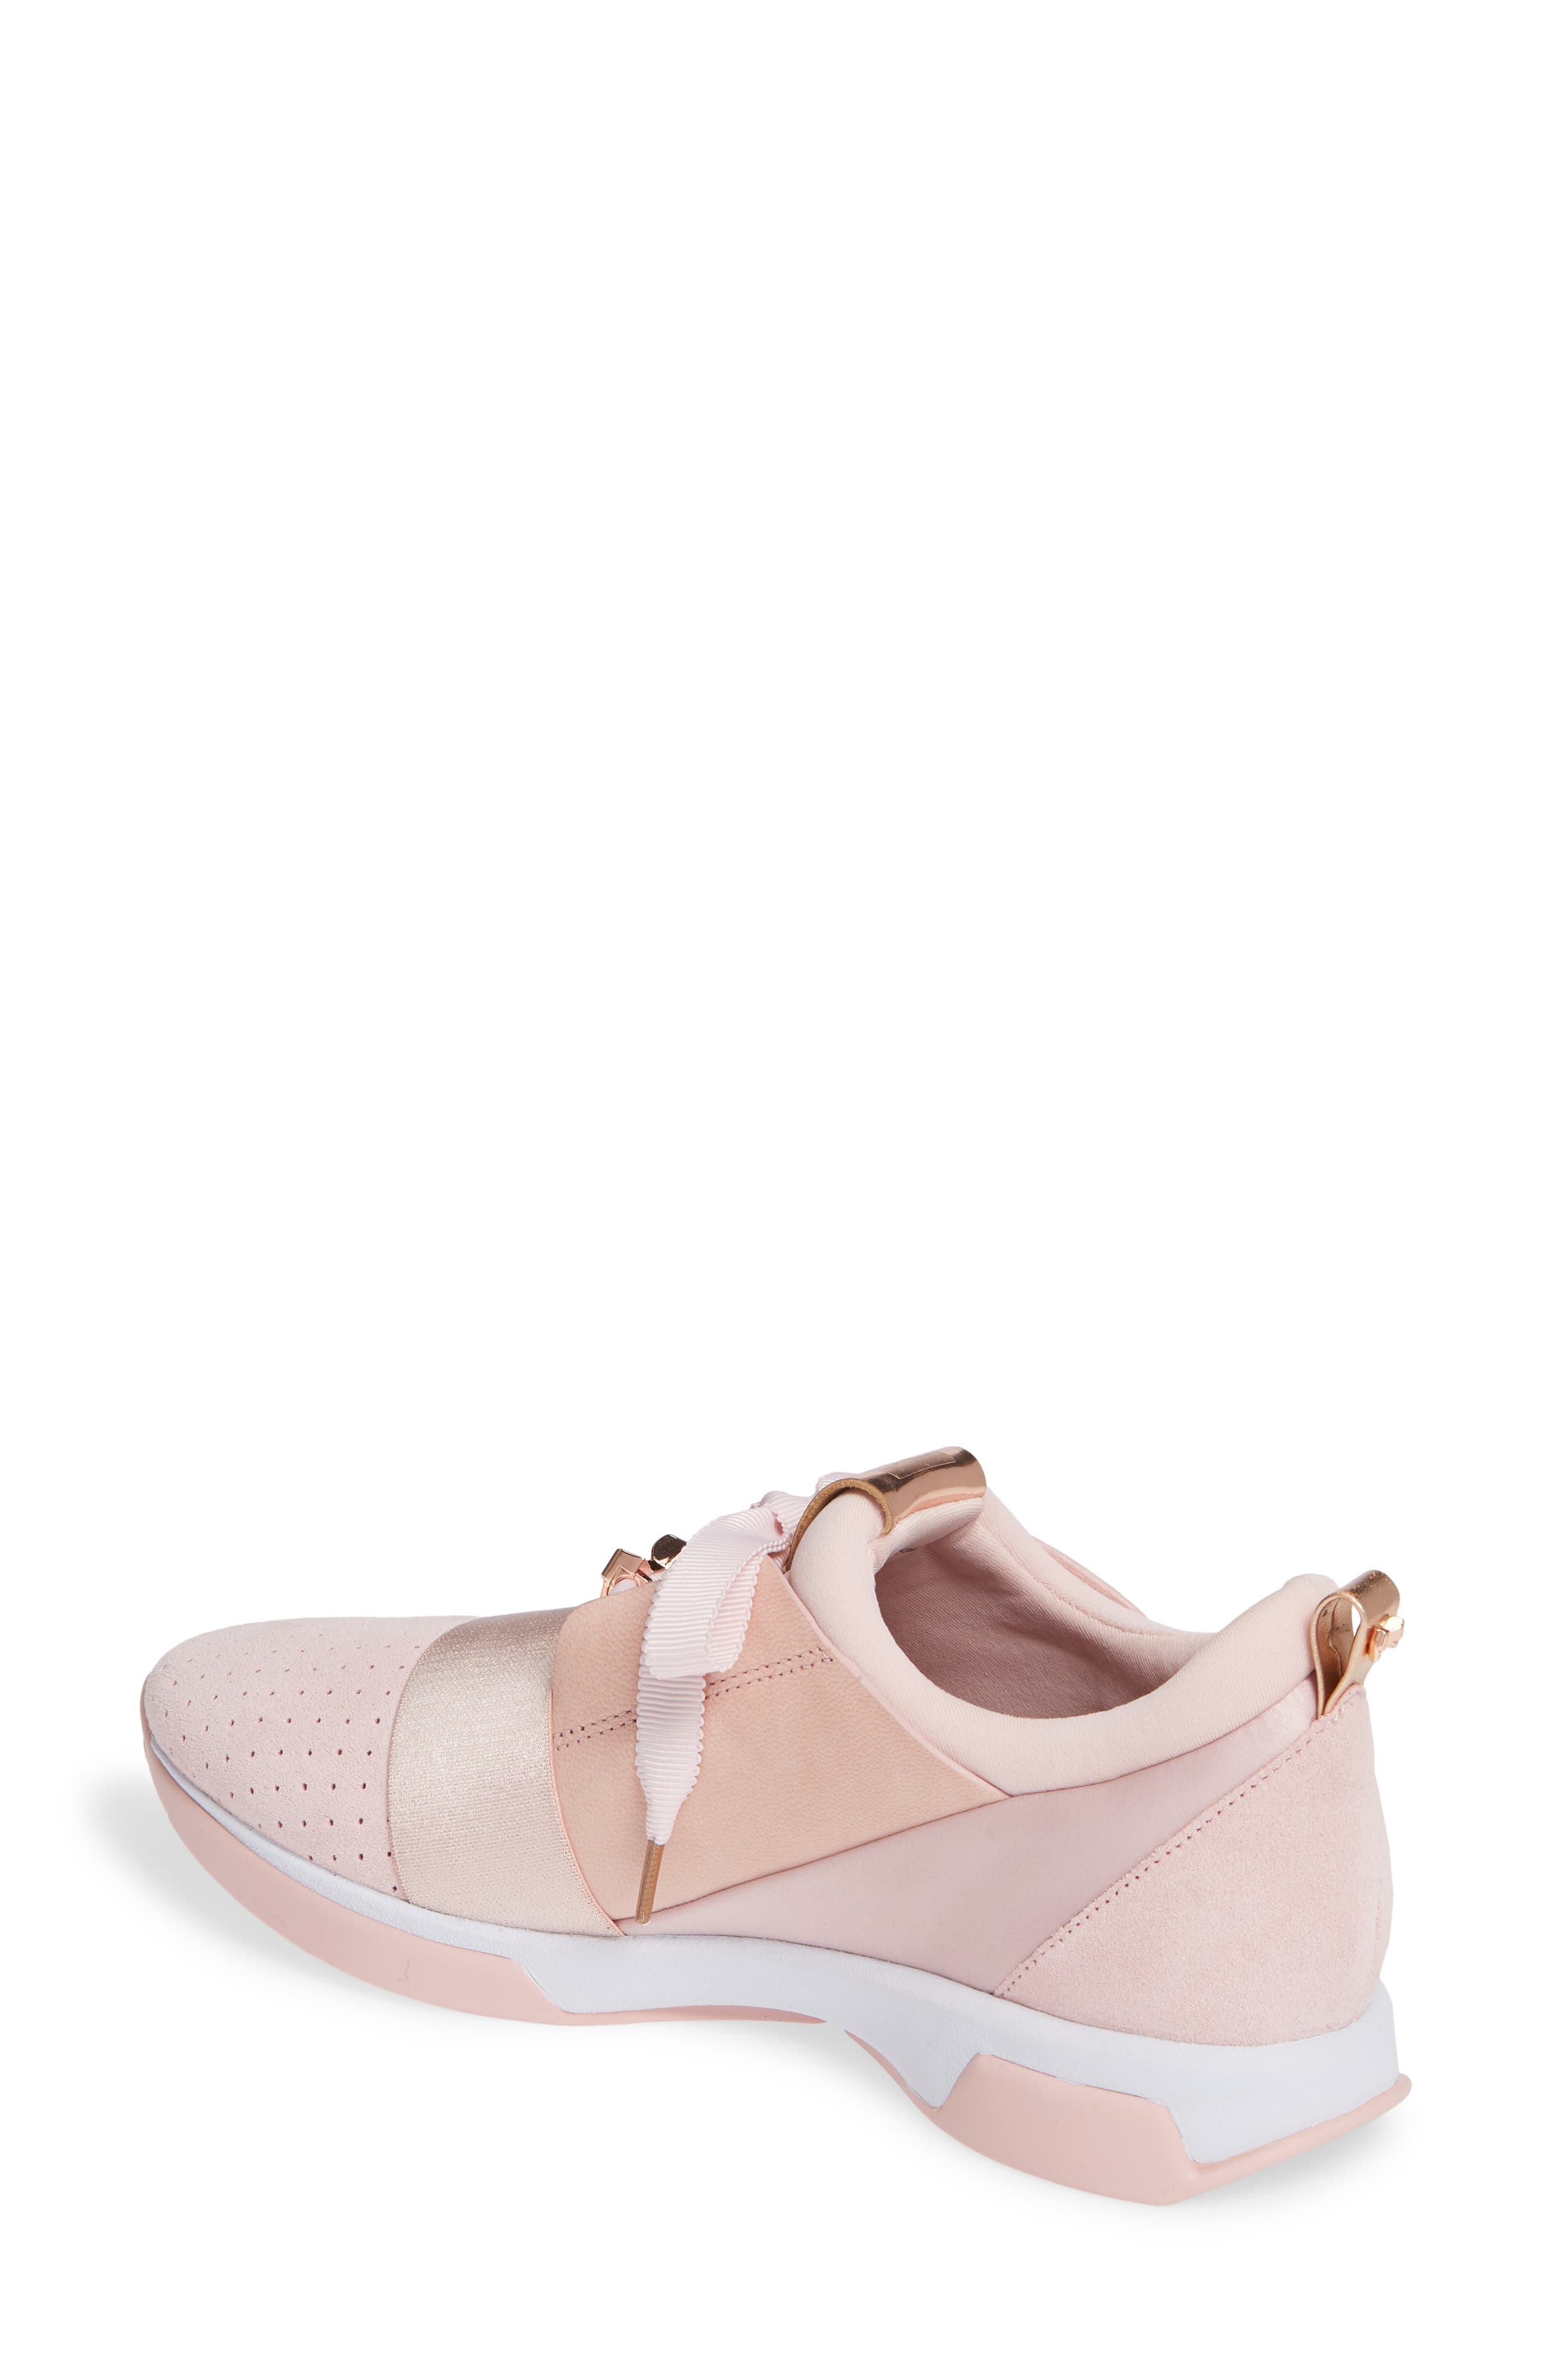 Cepap 2 Sneaker,                             Alternate thumbnail 2, color,                             MINK PINK FABRIC